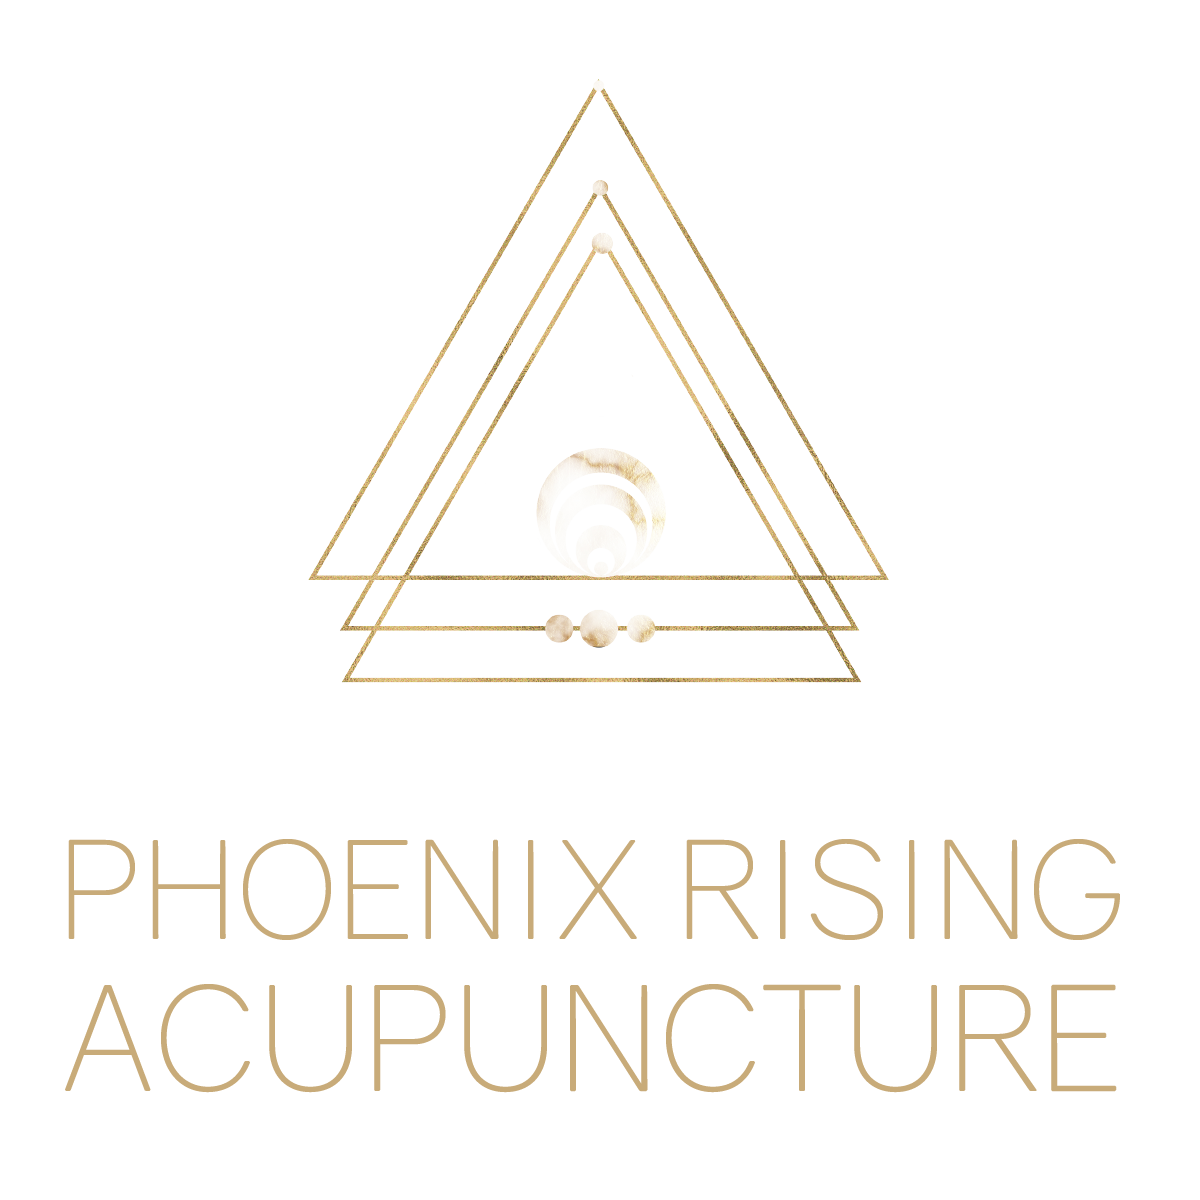 Phoenix Rising Acupuncture | Houston Acupuncture